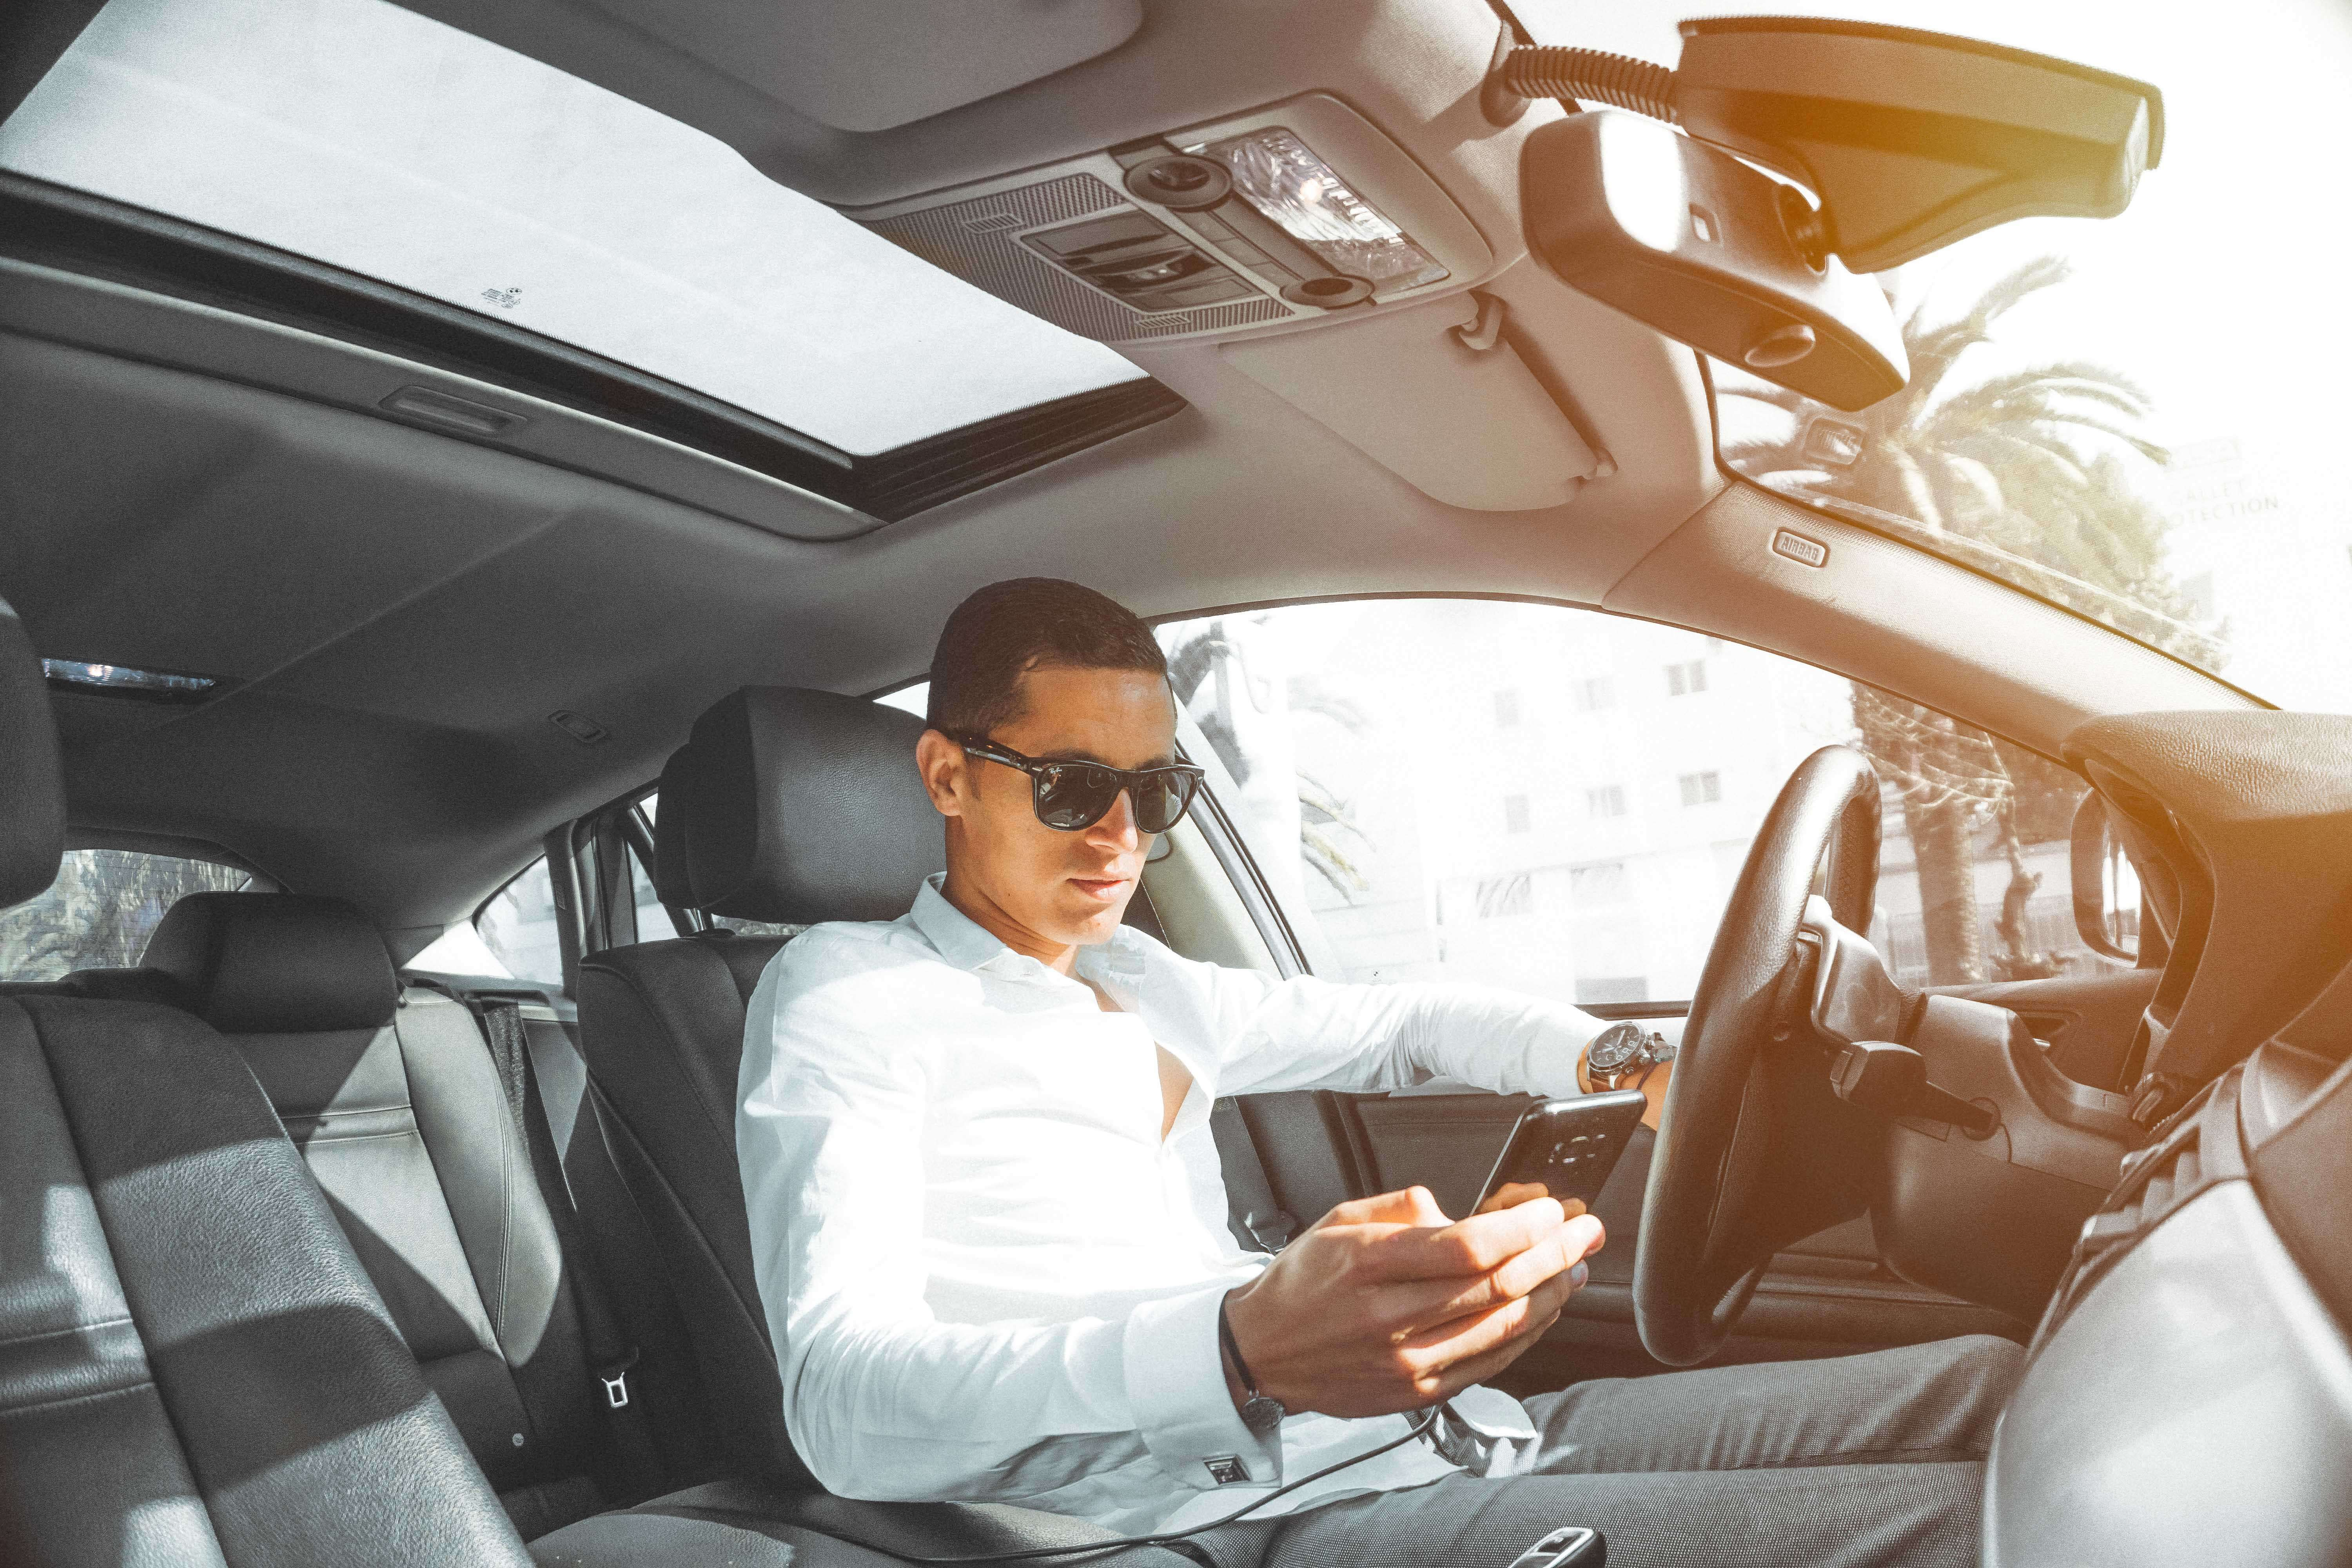 New Study Reveals Distracted Driving Beliefs